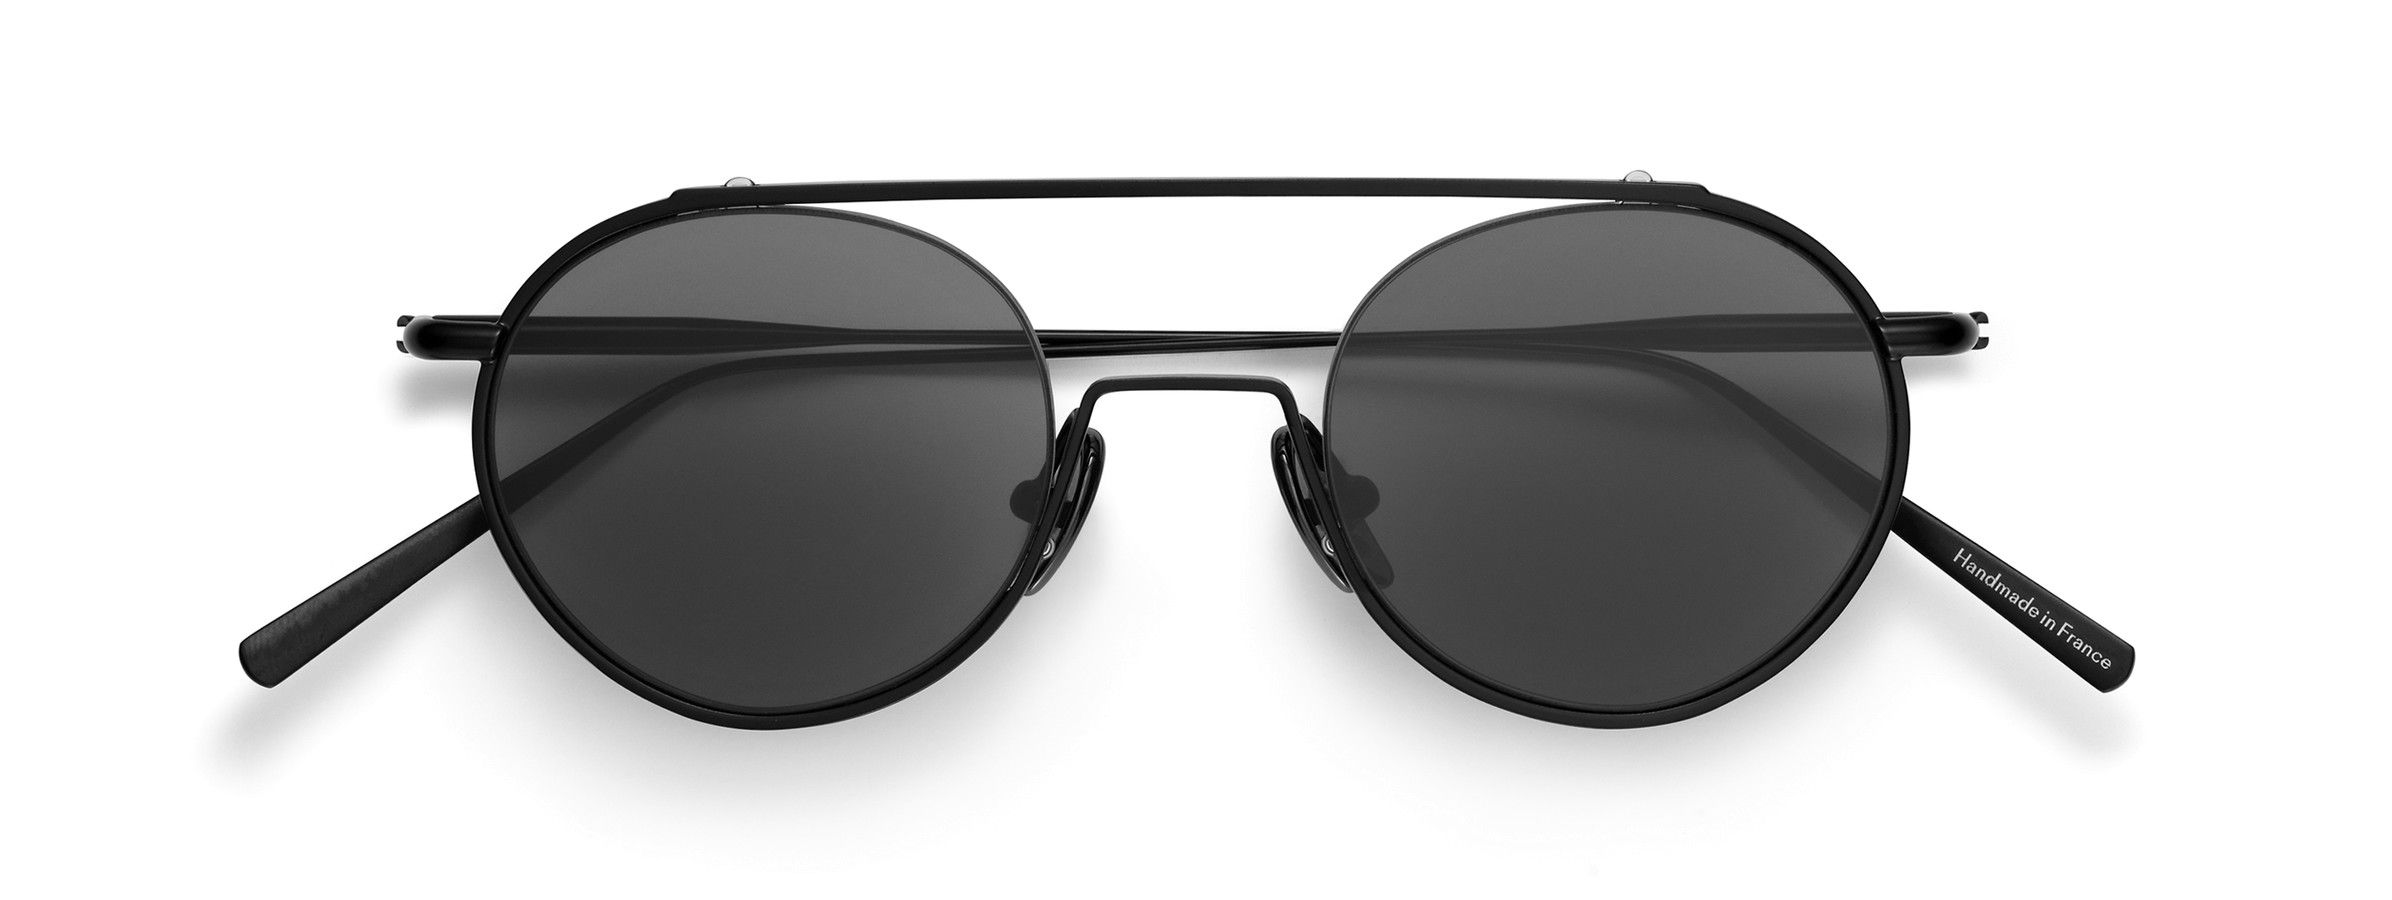 Acne Studios Winston black satin Round metal frame sunglasses